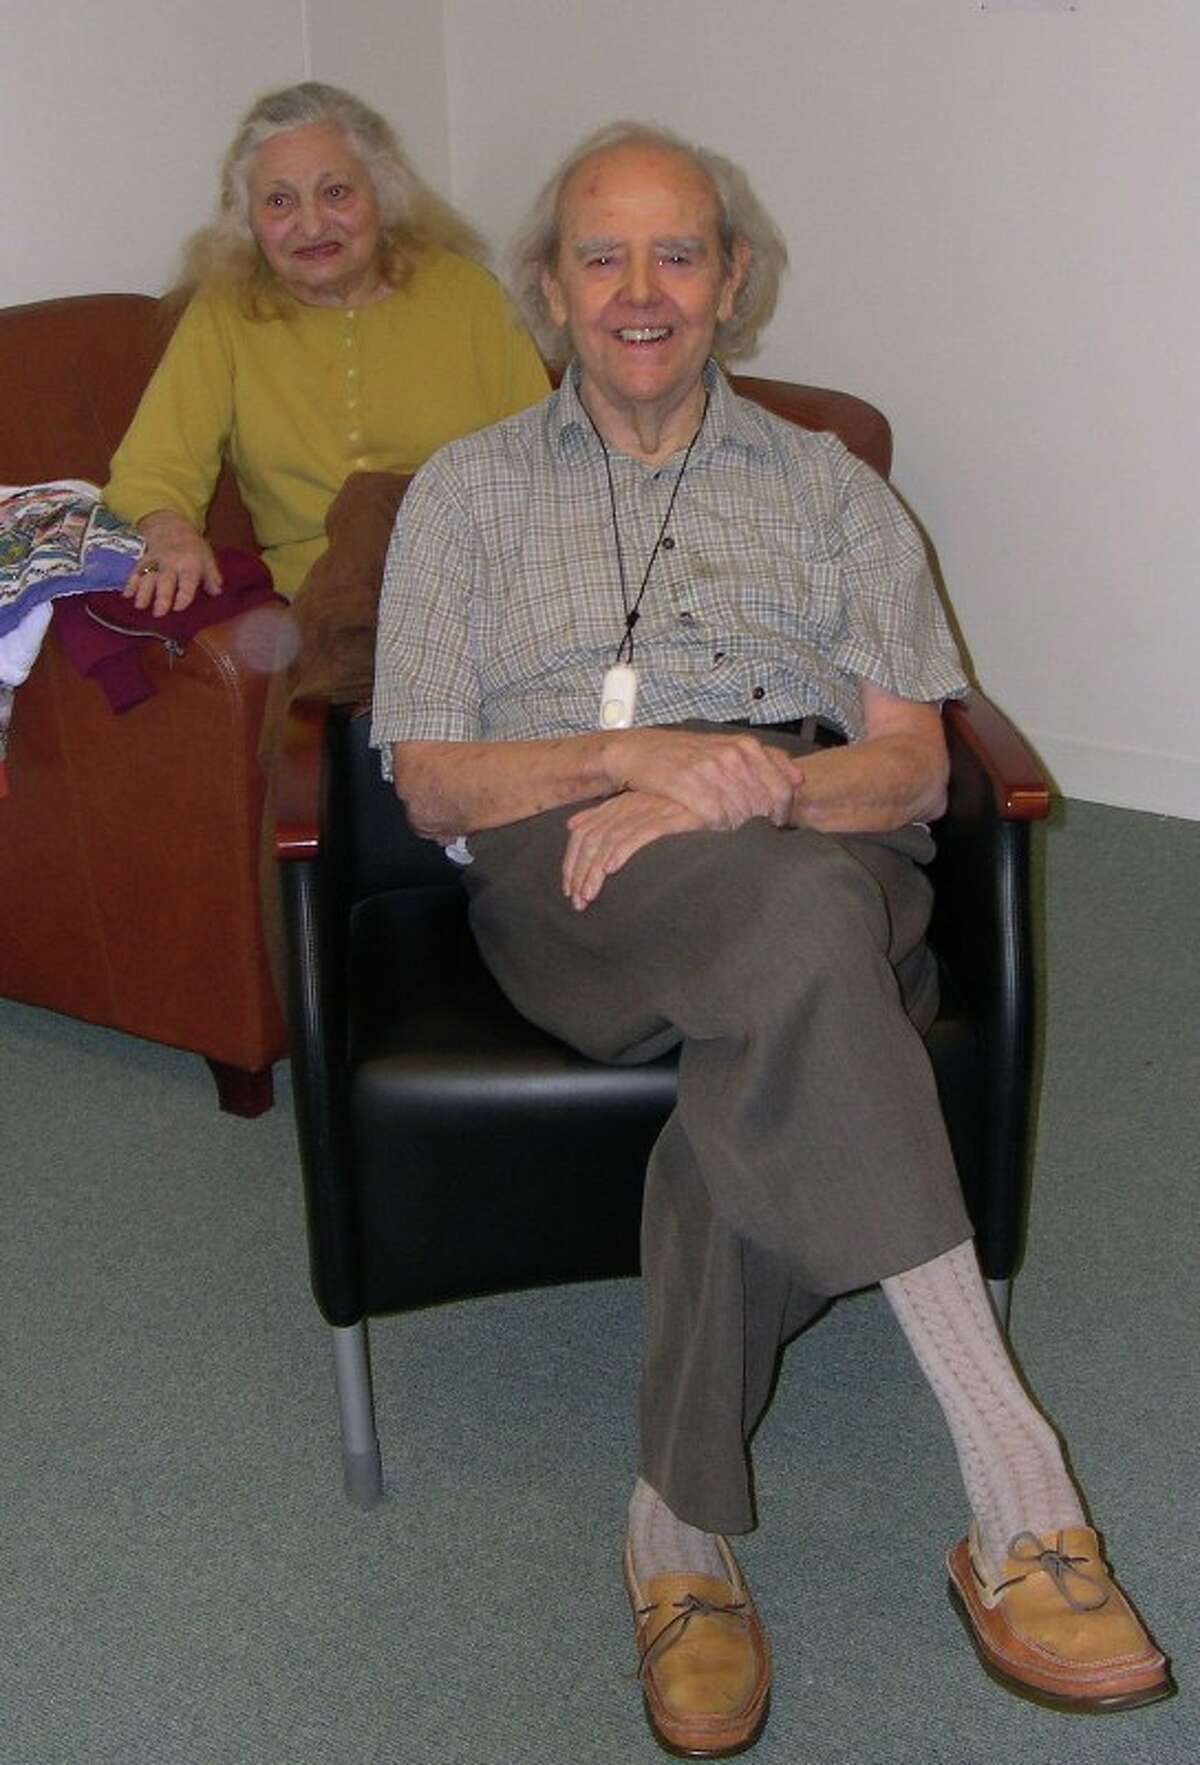 Helen and Harry Staley at Harry?'s poetry reading at the Writers Institute in 2012. Harry Staley died from complications of pneumonia on Aug. 6, 2018, at age 94. (Photo provided)